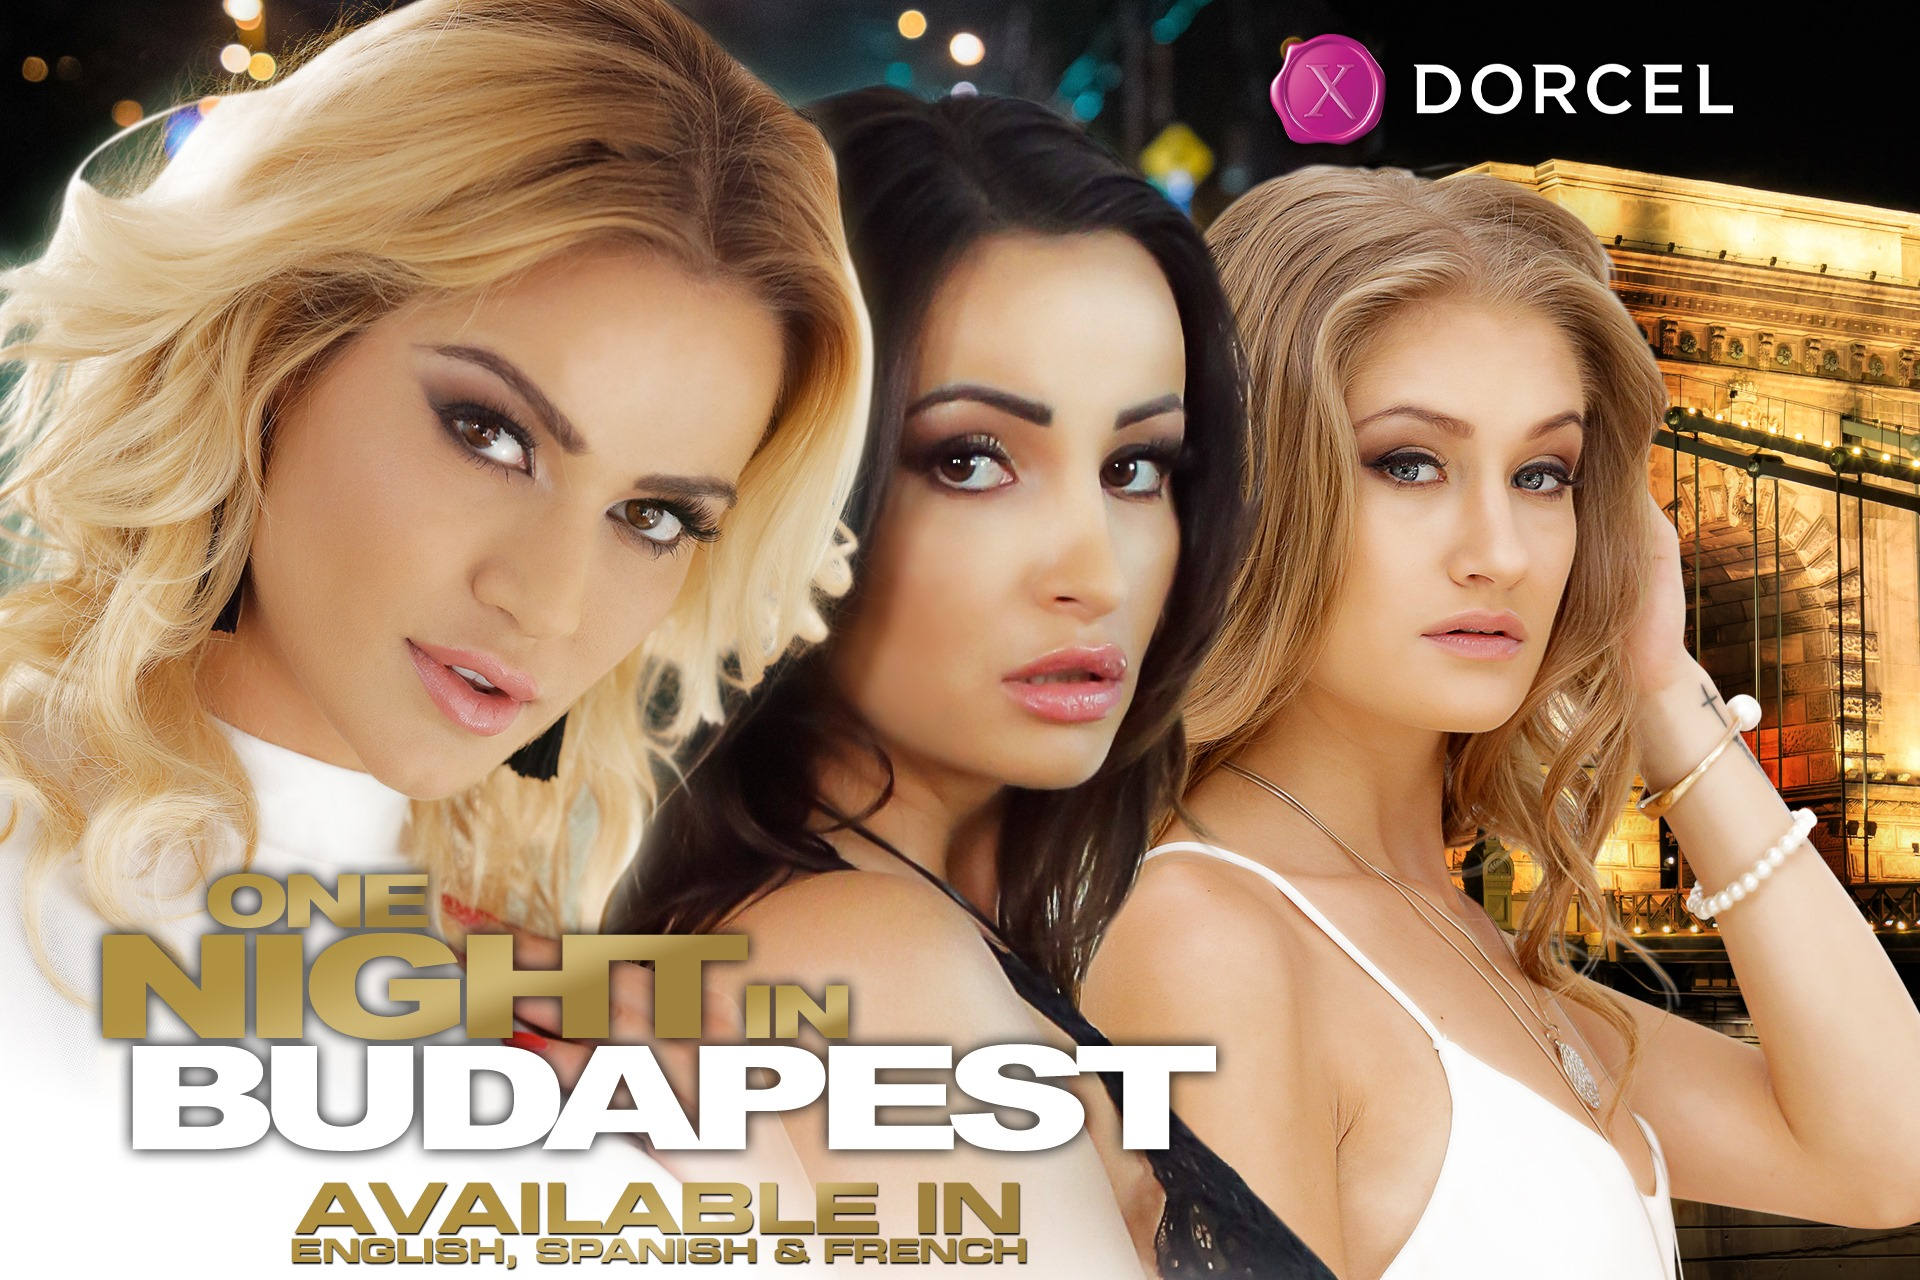 For all our American subscribers who'd need a getaway, Dorcel proposes an exclusive stunt over the big premiere release of #OneNightInBudapest in Eng…